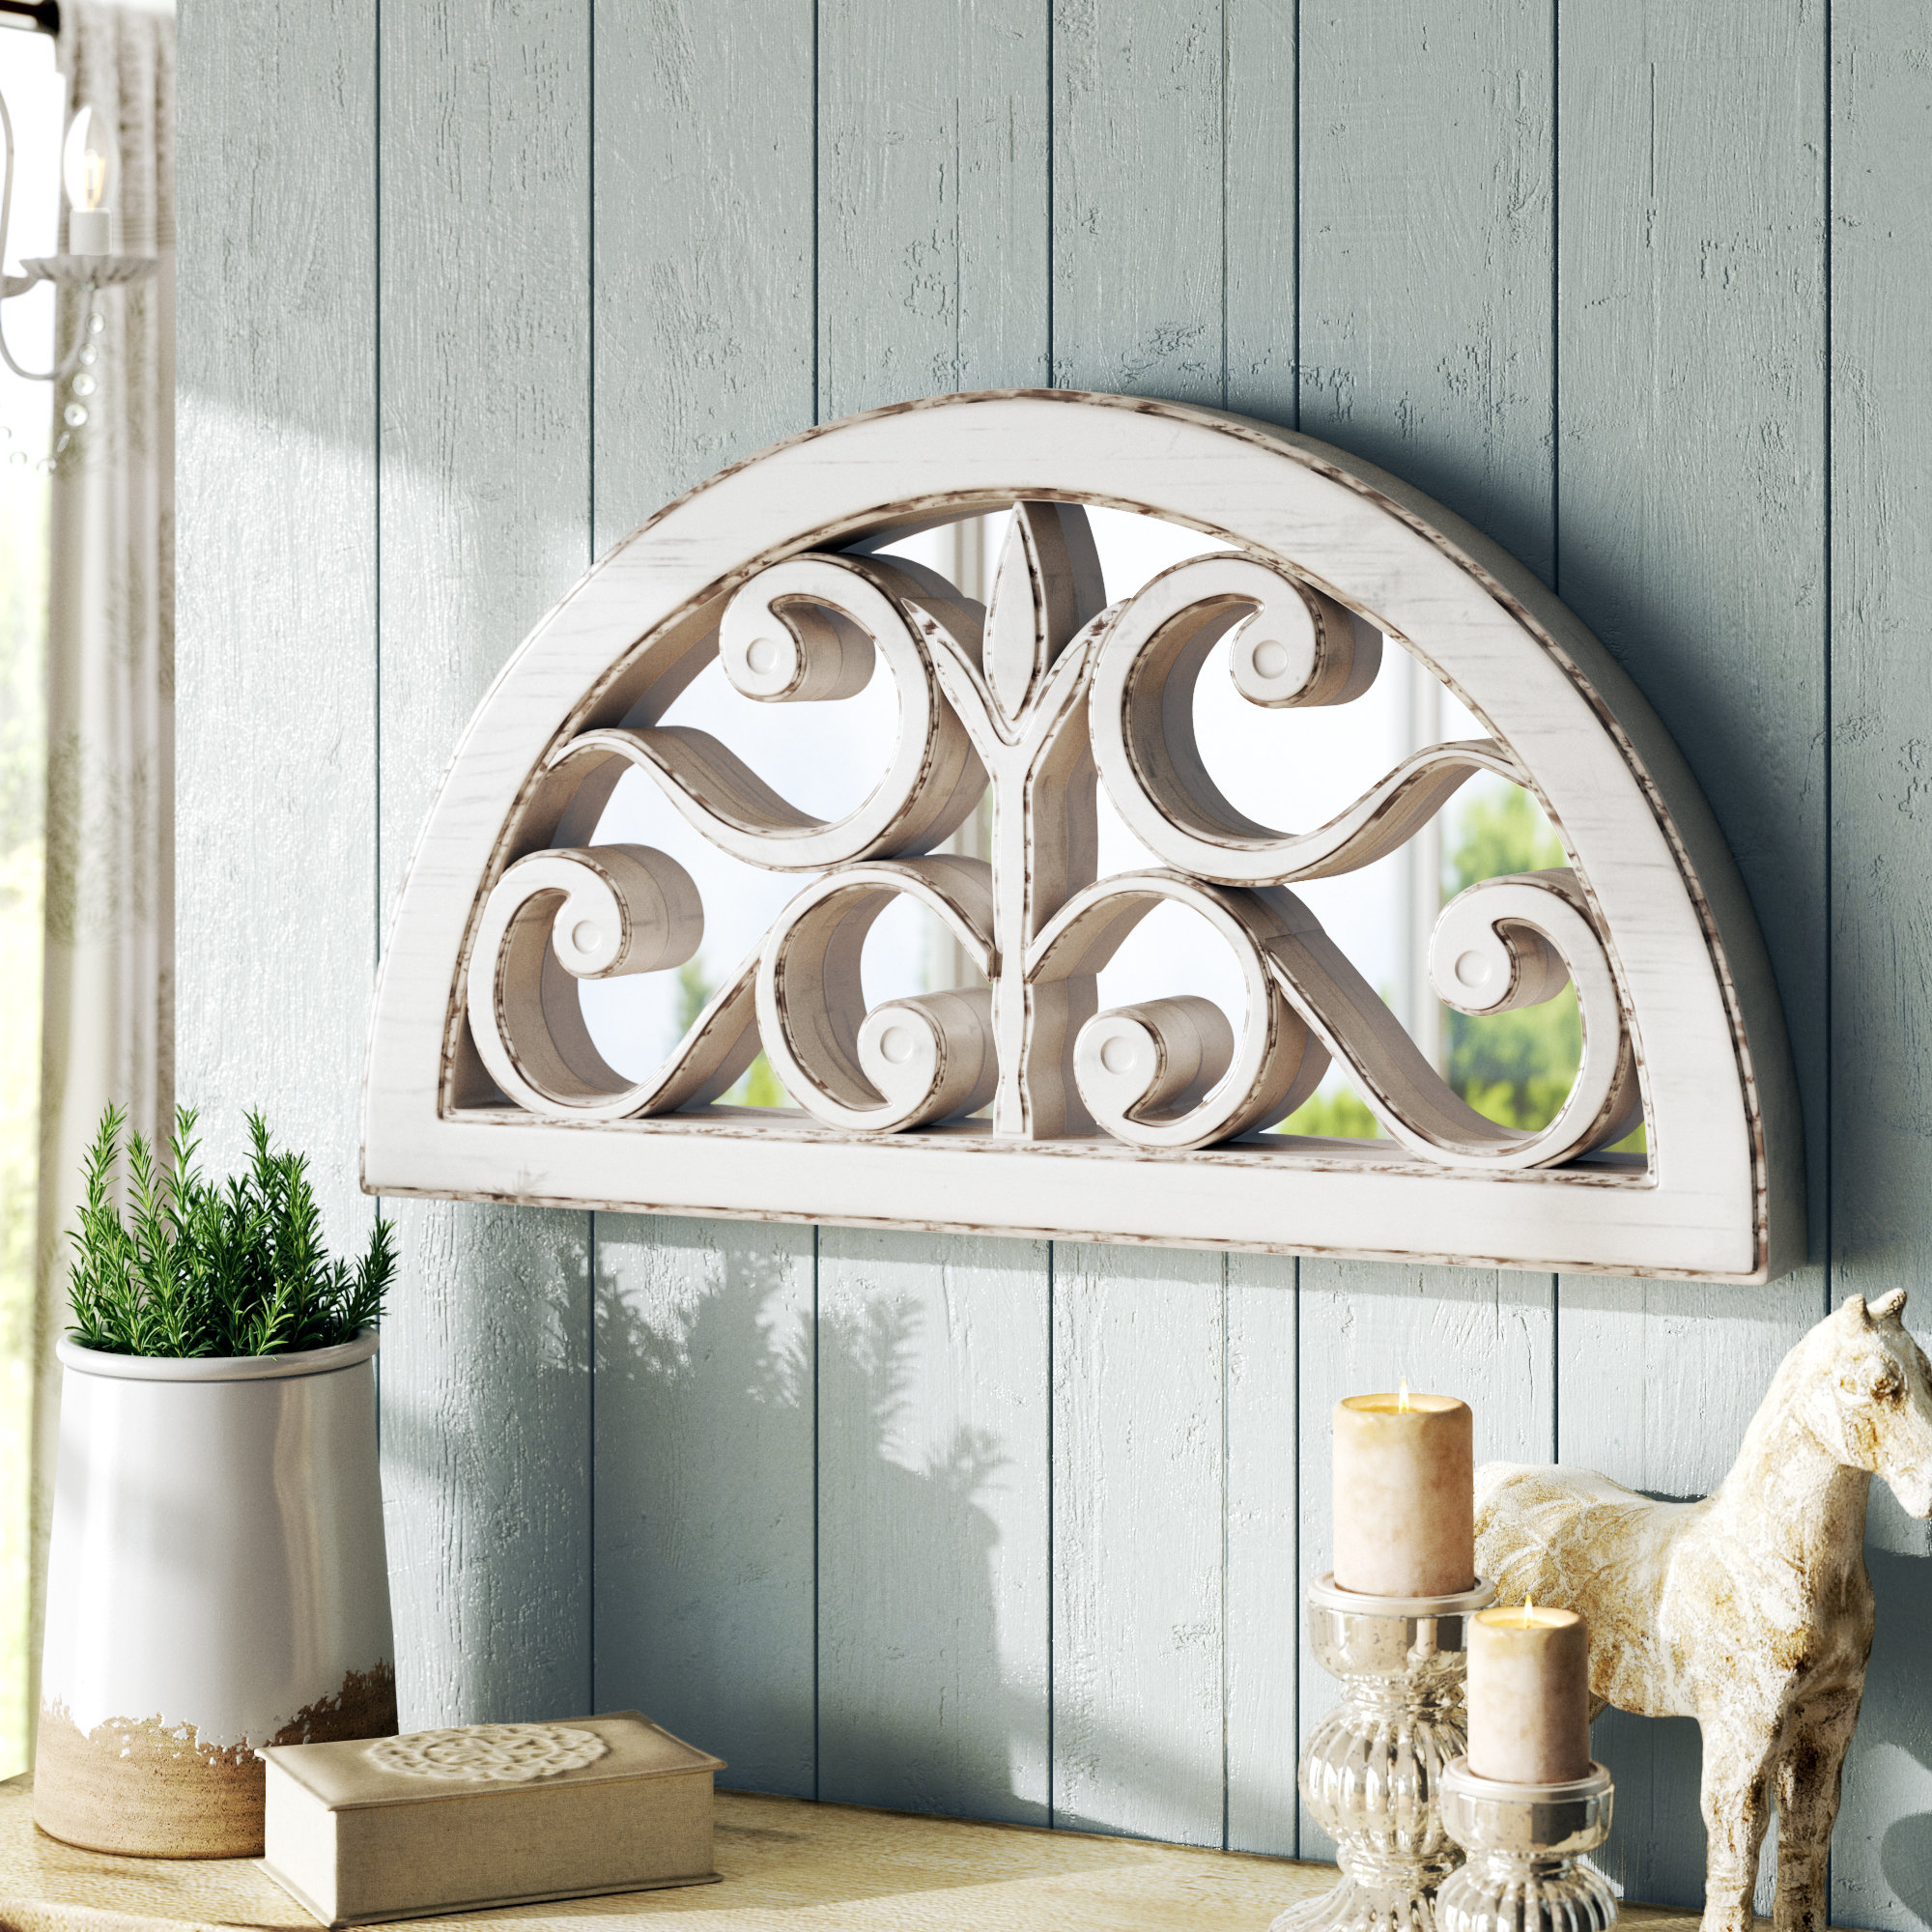 2019 Fabrizio Accent Mirror With Polen Traditional Wall Mirrors (View 11 of 20)